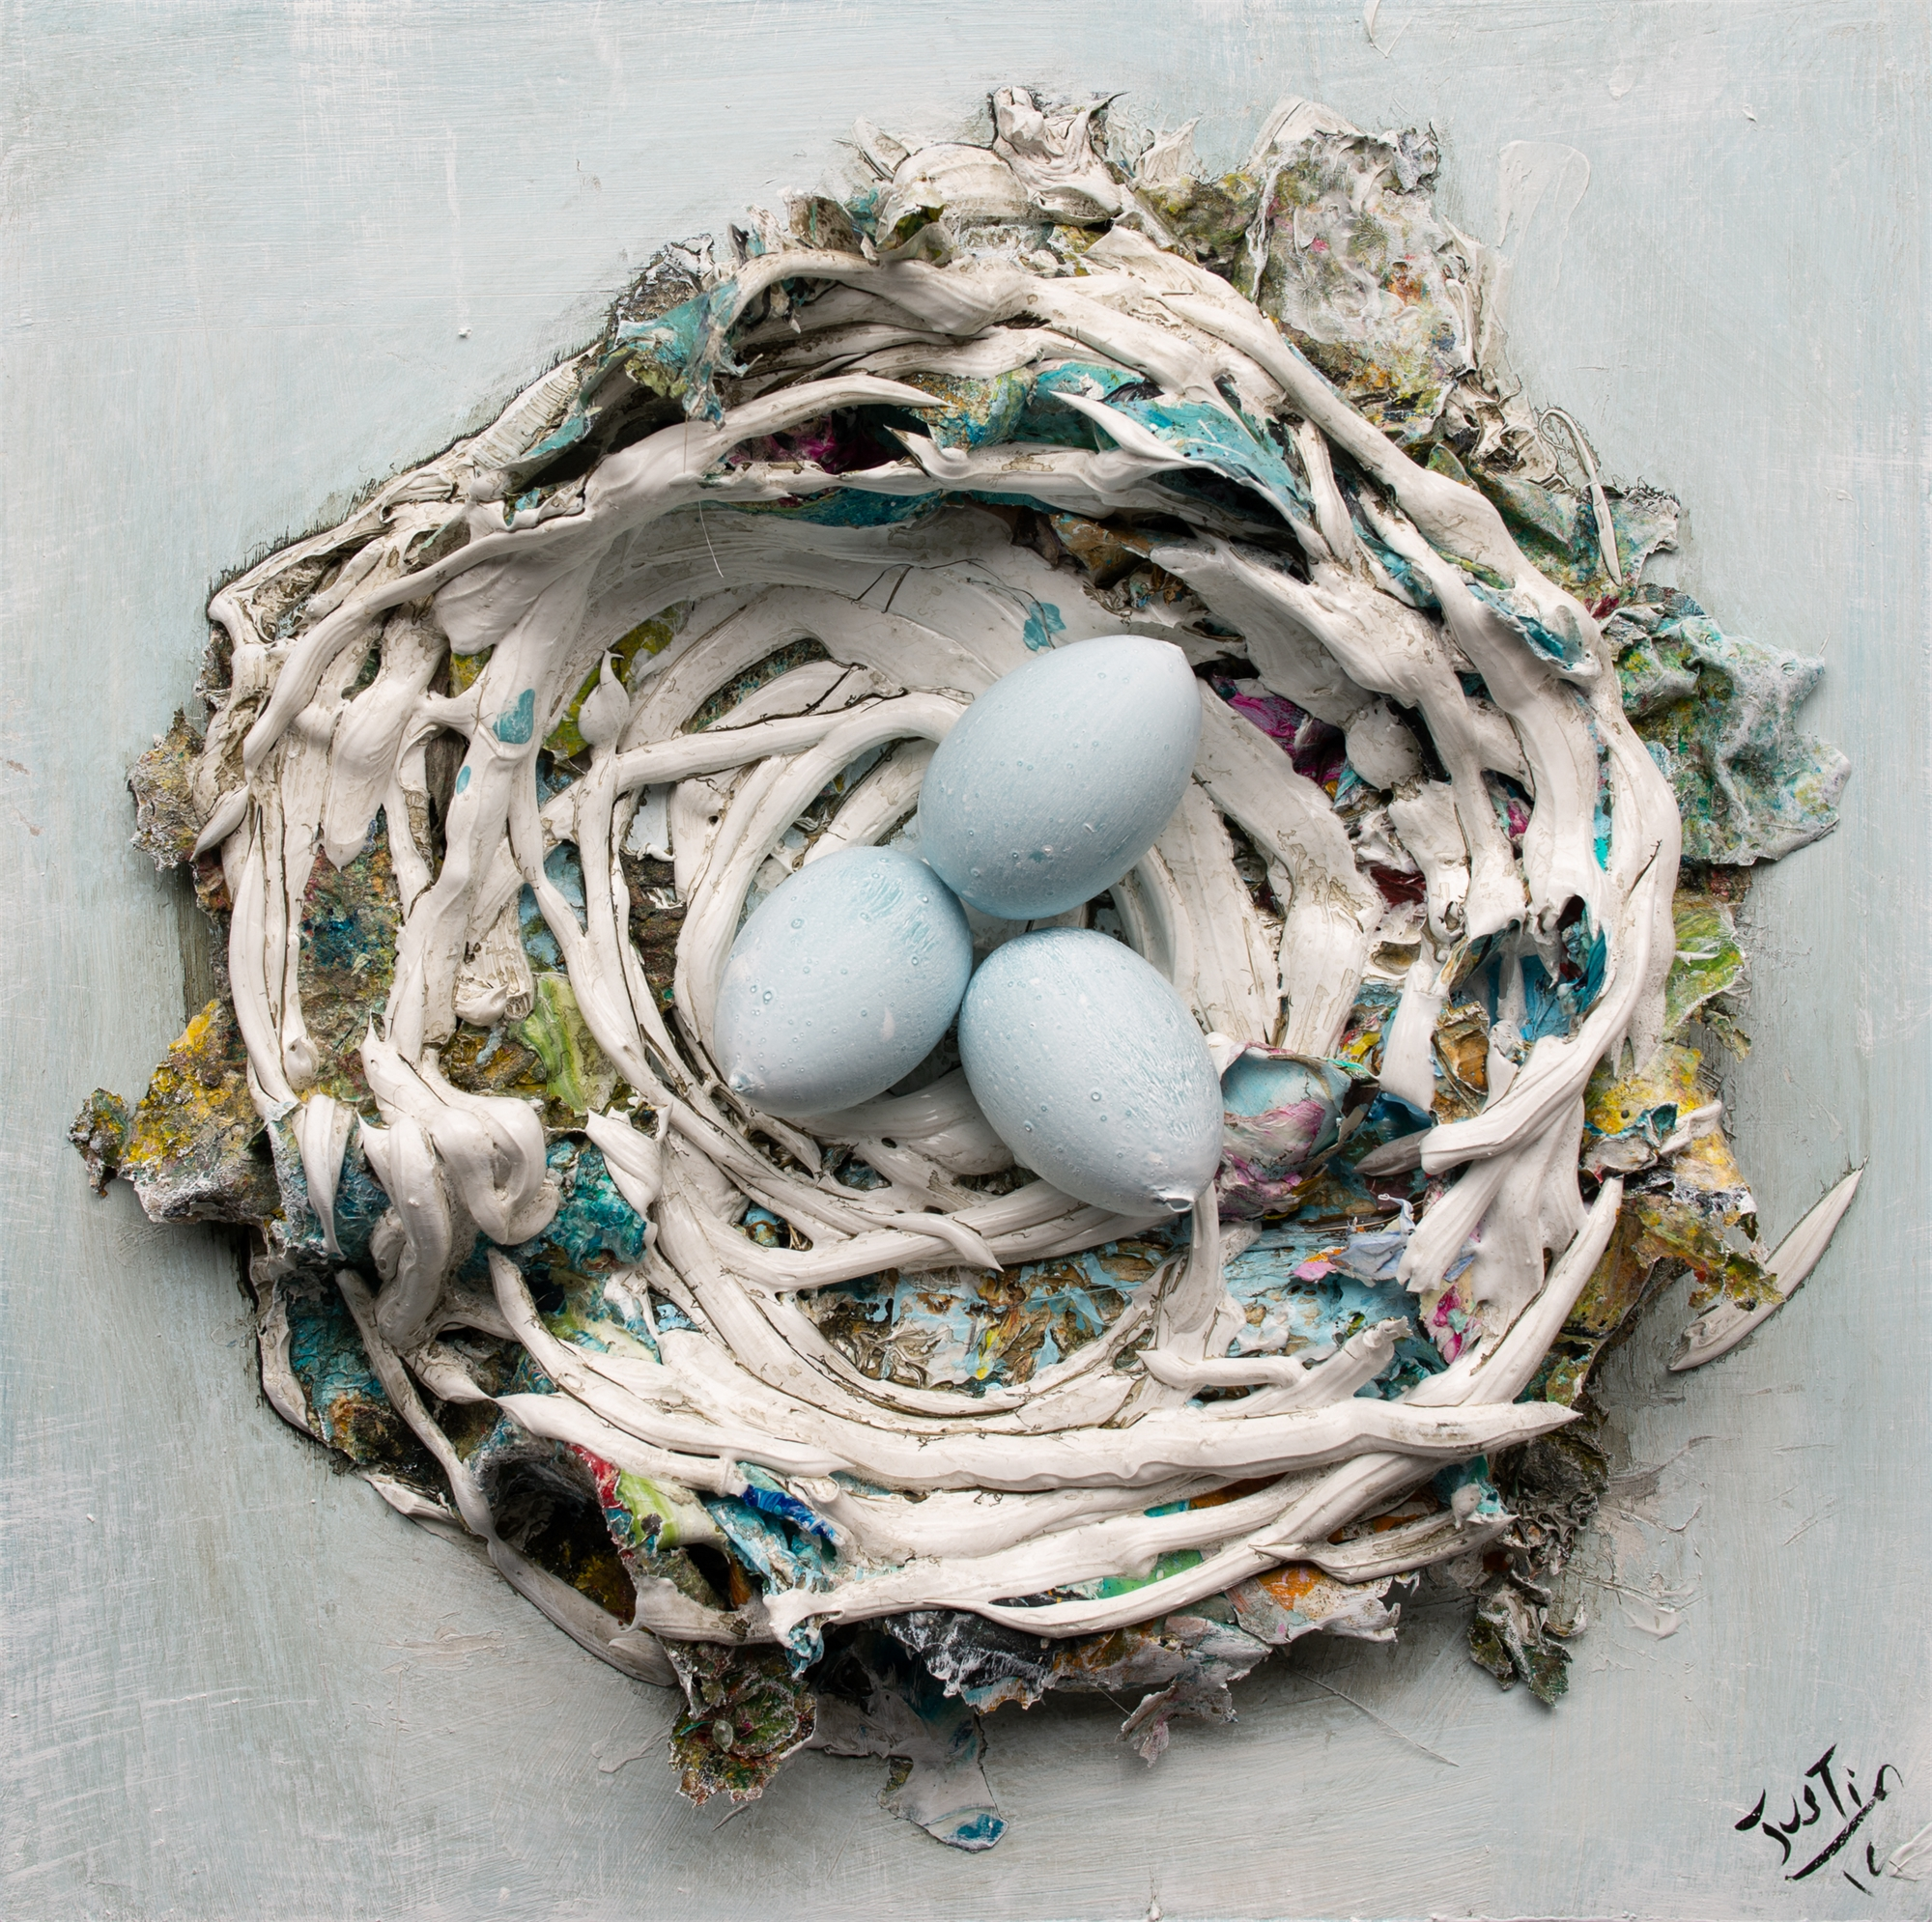 (SOLD) NEST NS-16x16-2019-265 by JUSTIN GAFFREY